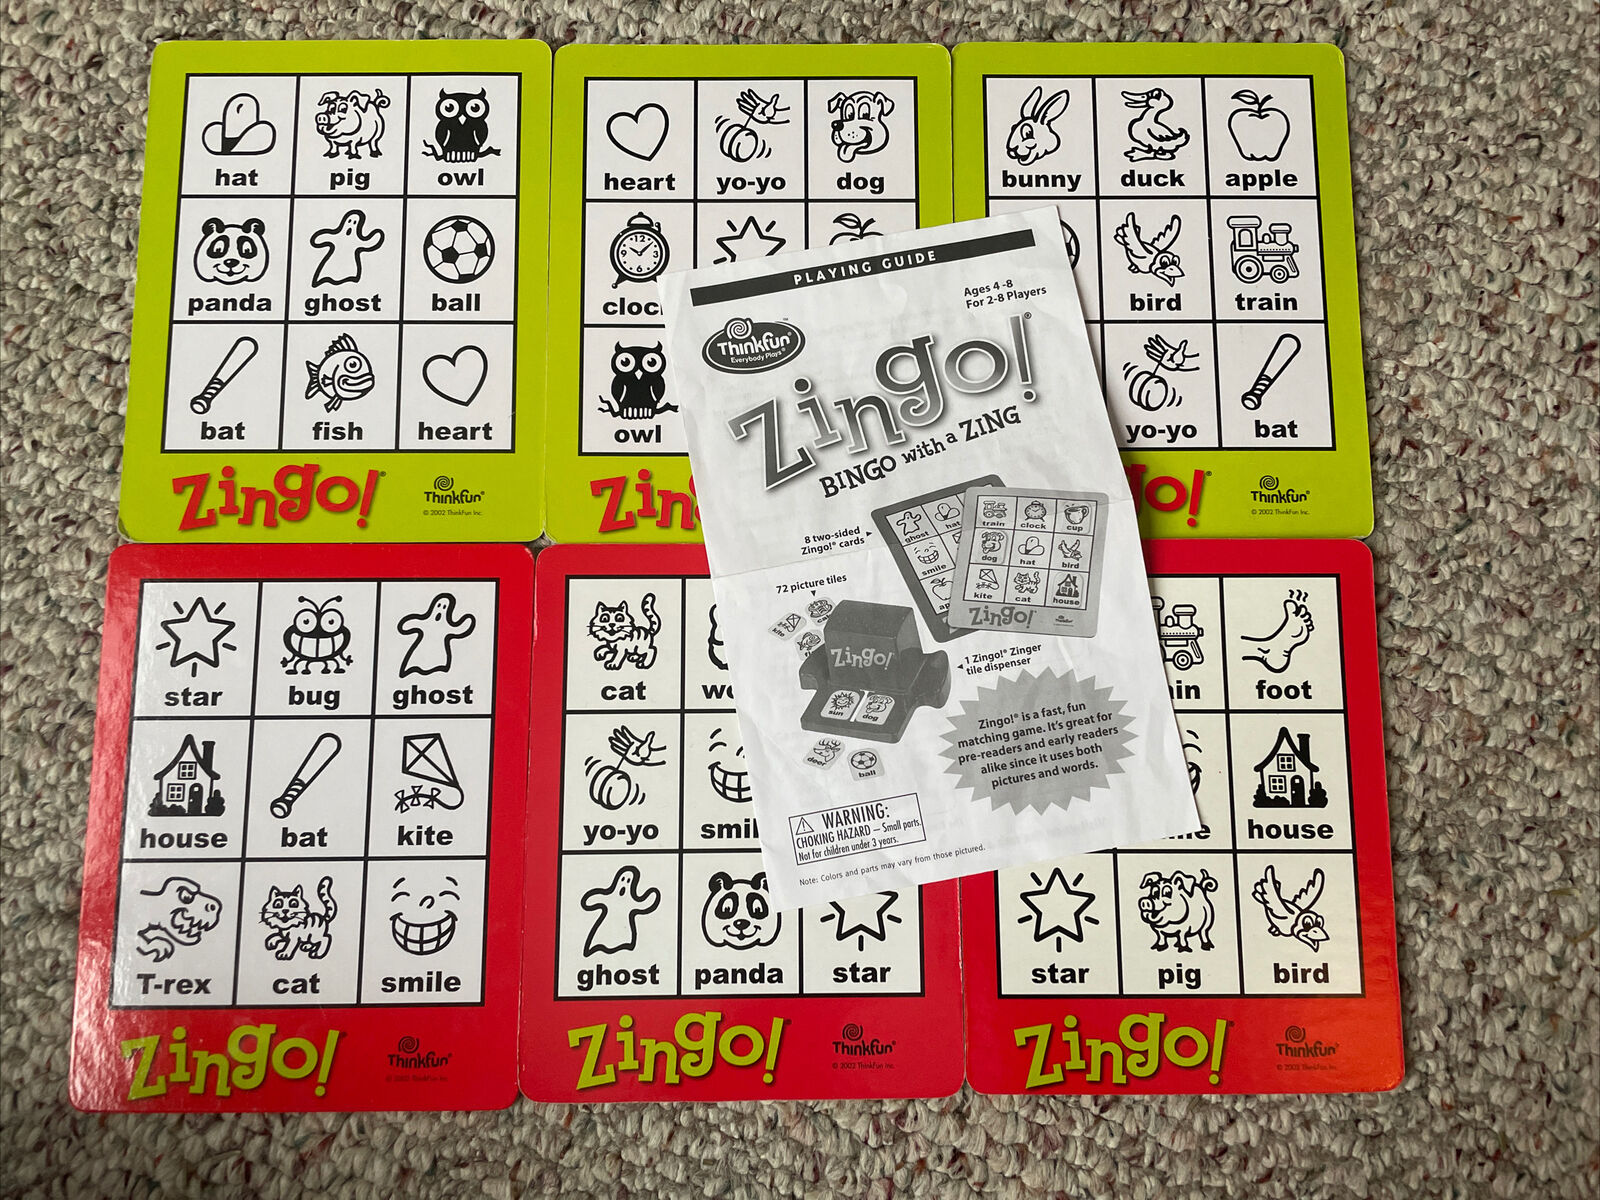 Zingo! Bingo with a Zing Game By Thinkfun REPLACEMENT 6 CARDS ONLY - Parts lot  ThinkFun Does not apply